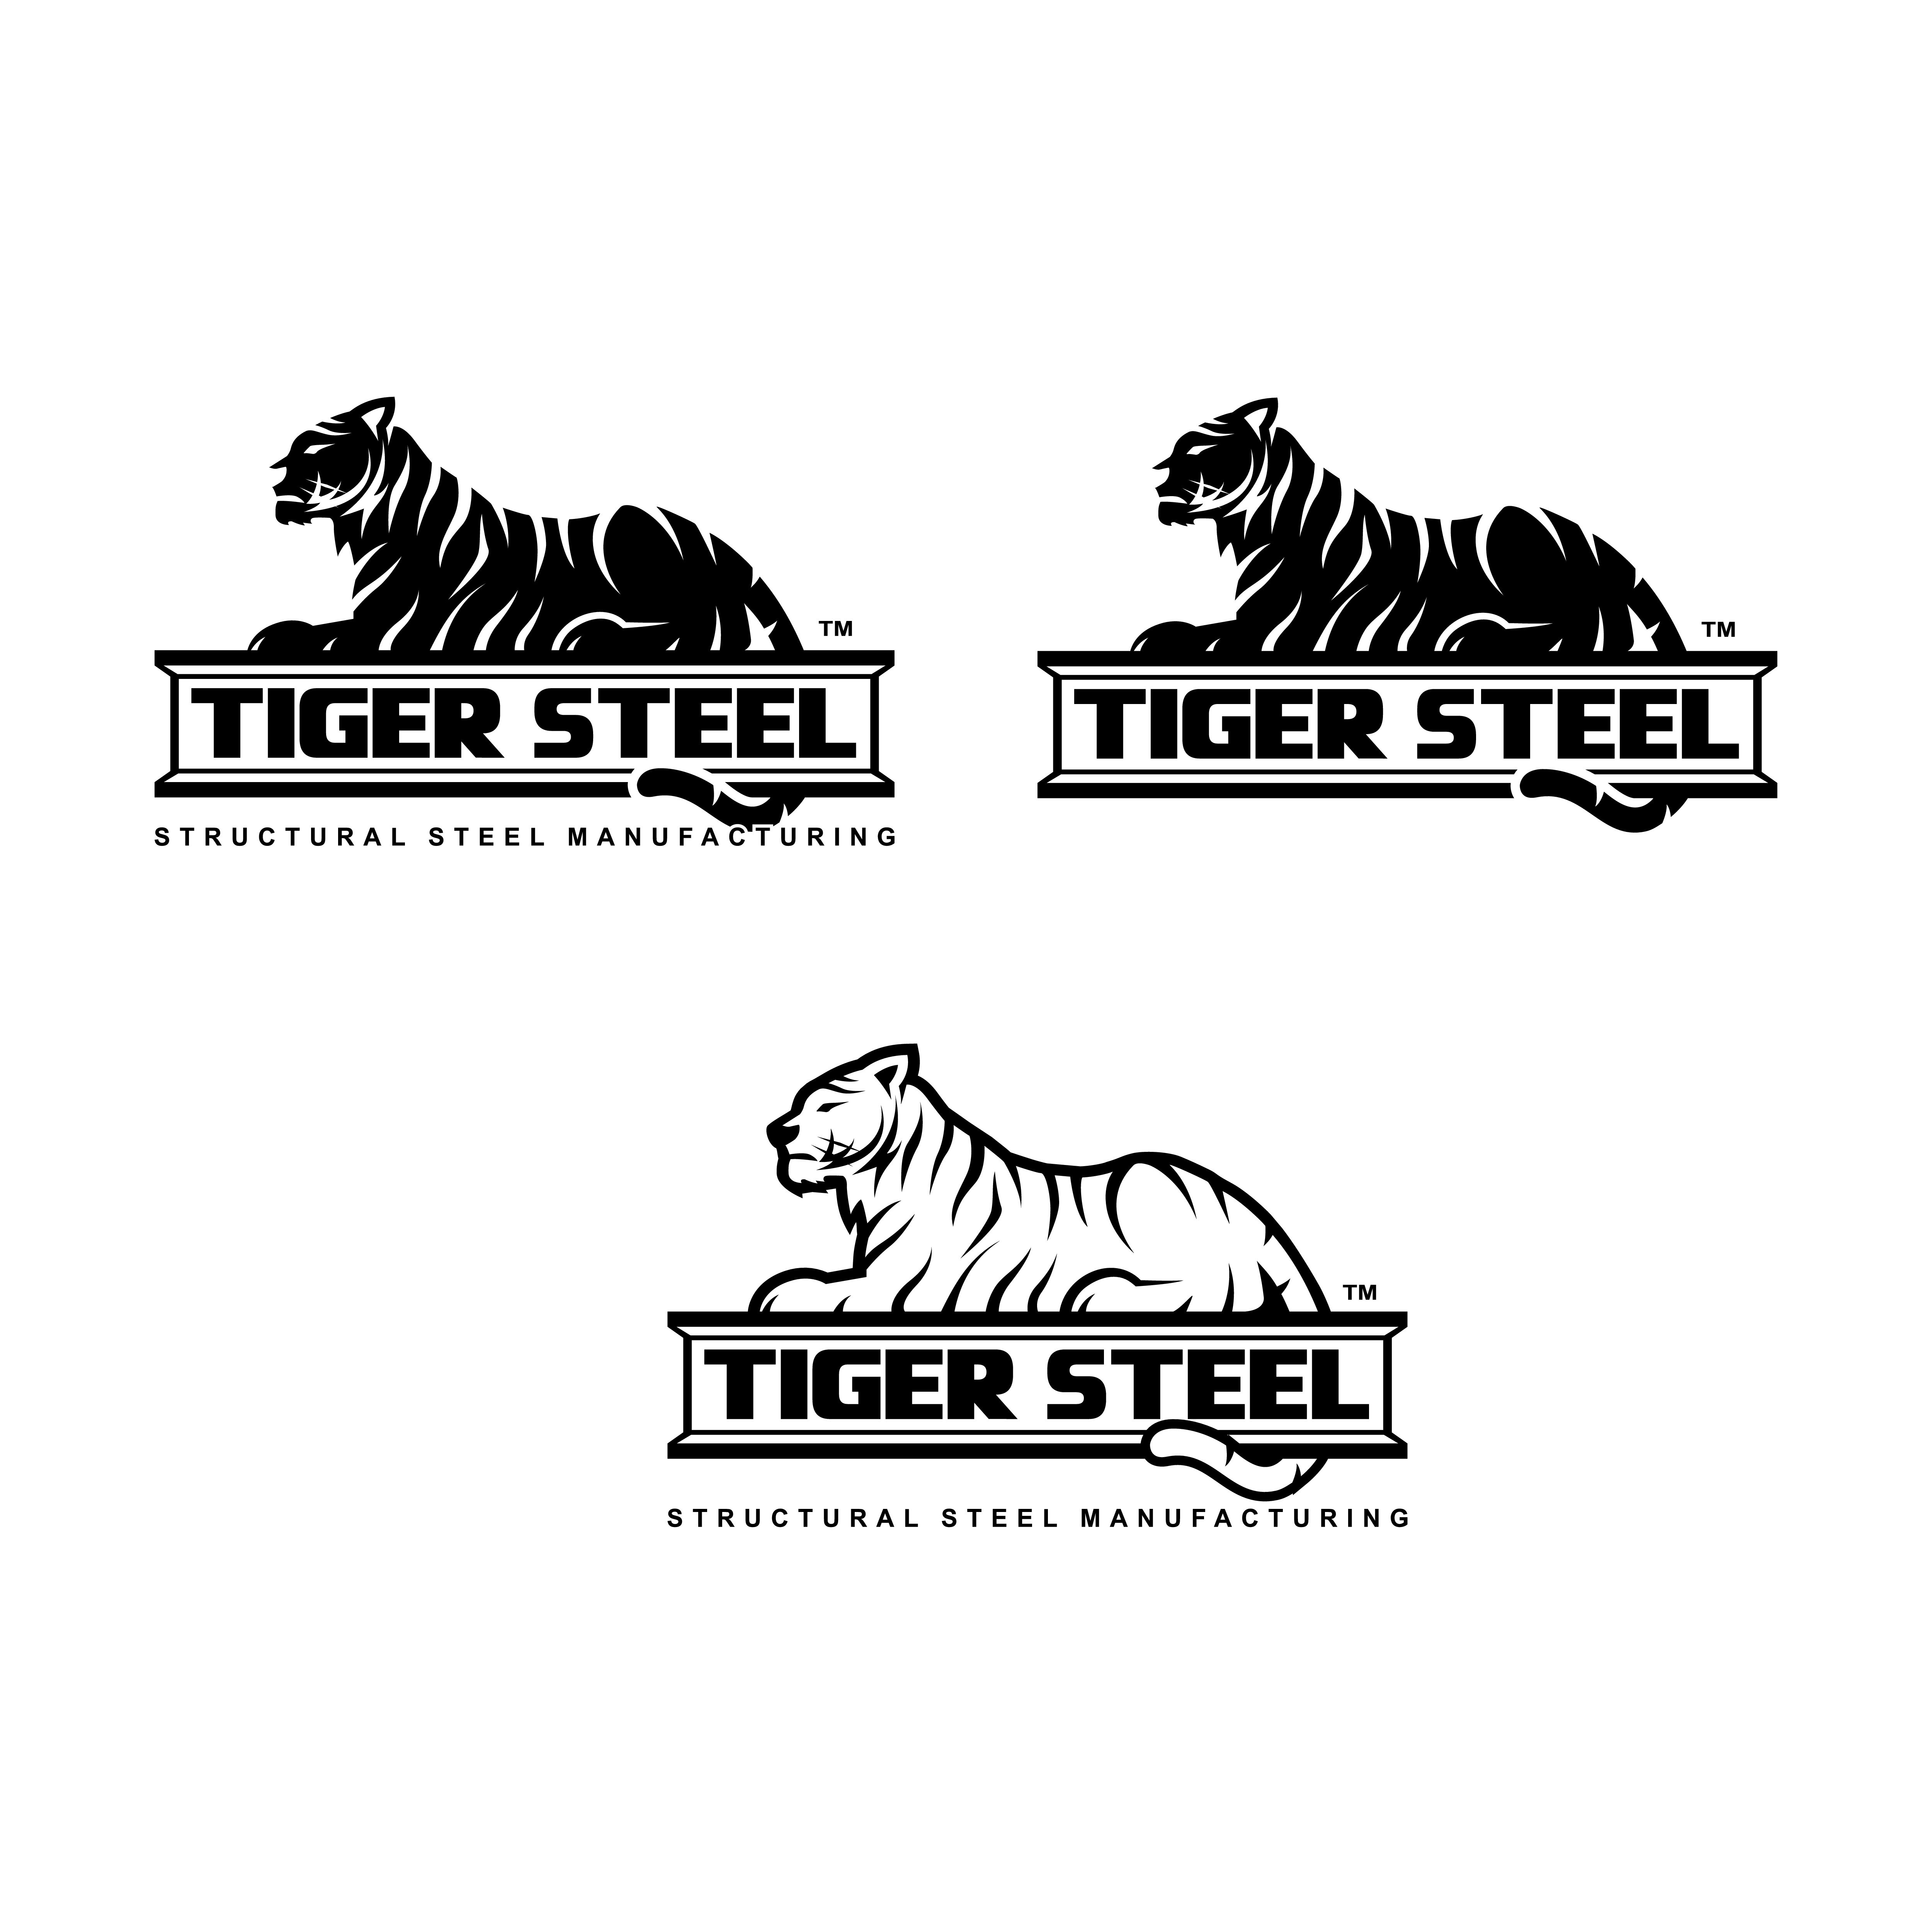 Put the Roar into this new steel manufacturing logo